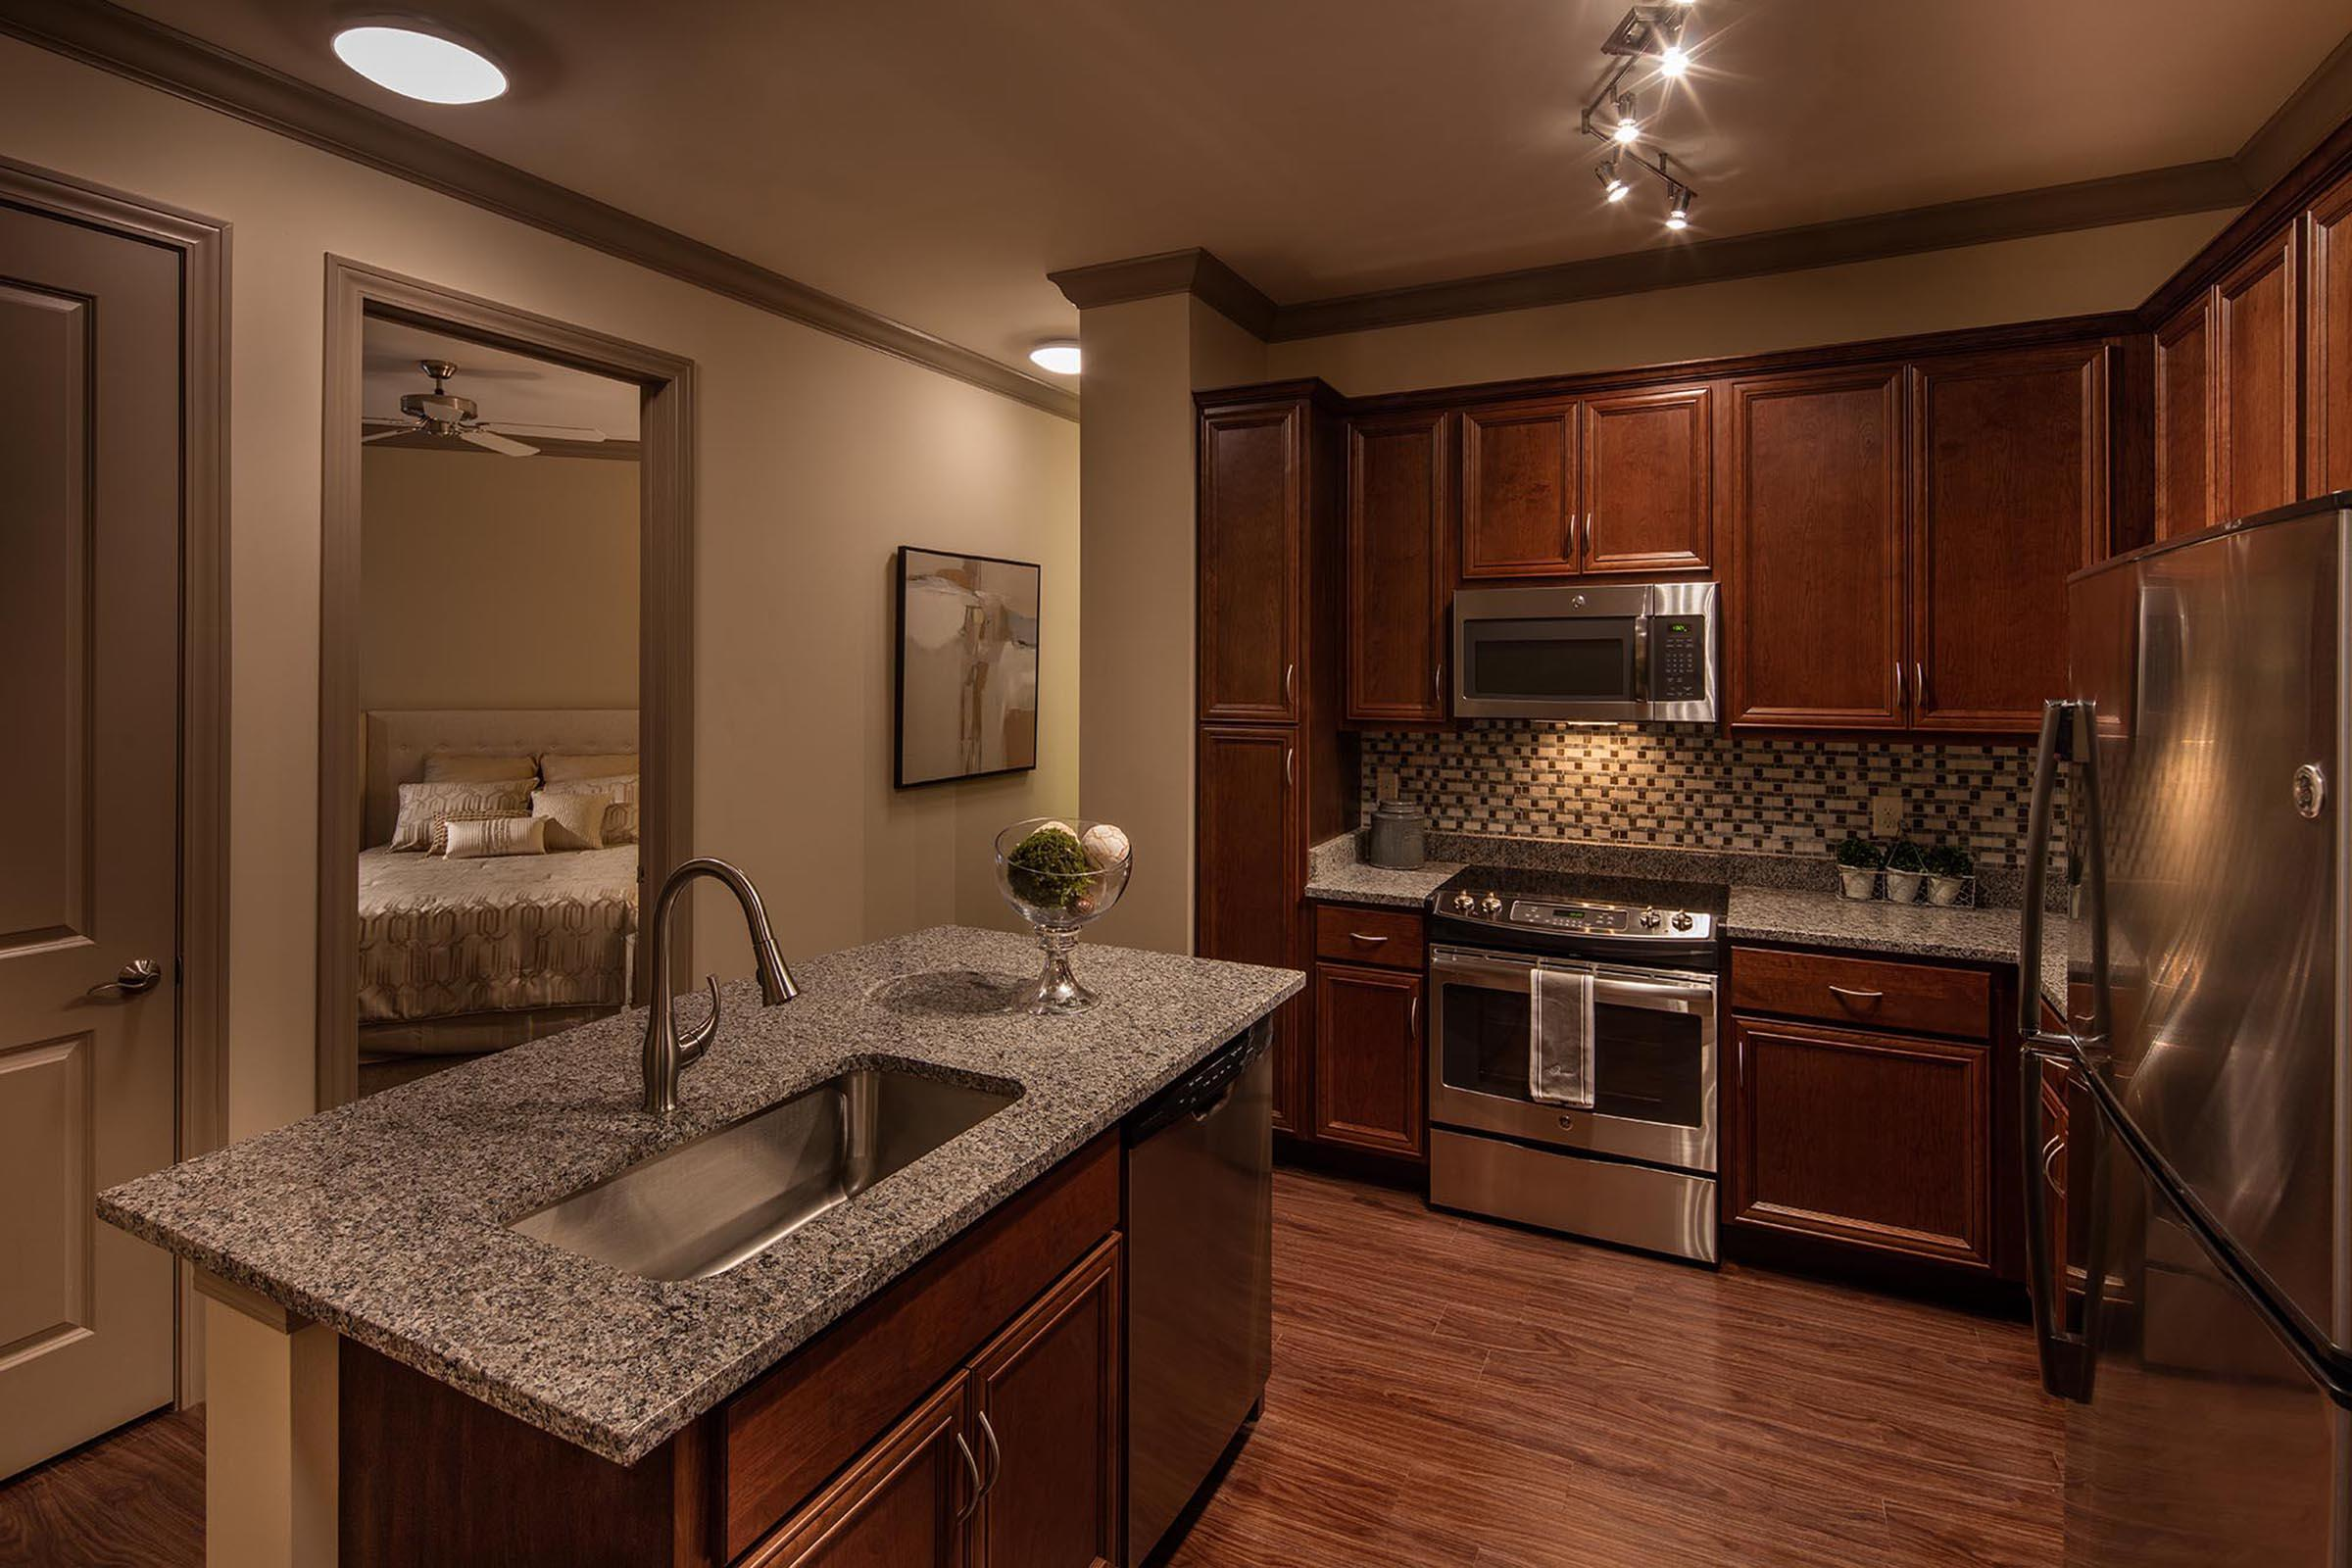 The Orion Apartments in Central West End - St. Louis, MO - Interior 01.jpg